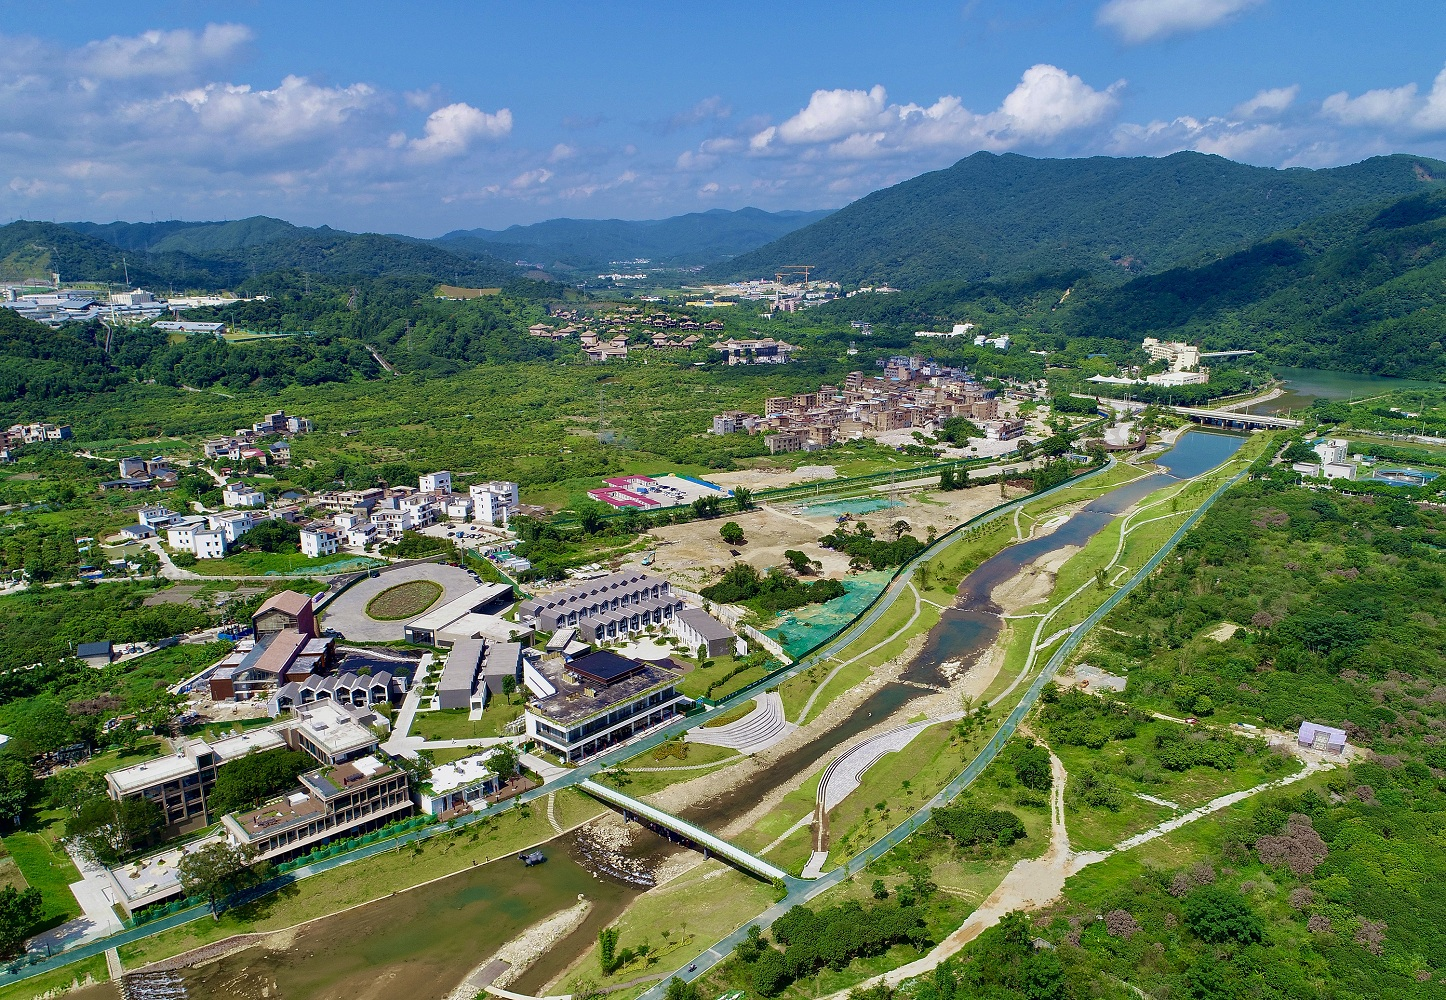 Introduction to Conghua's rural revitalization